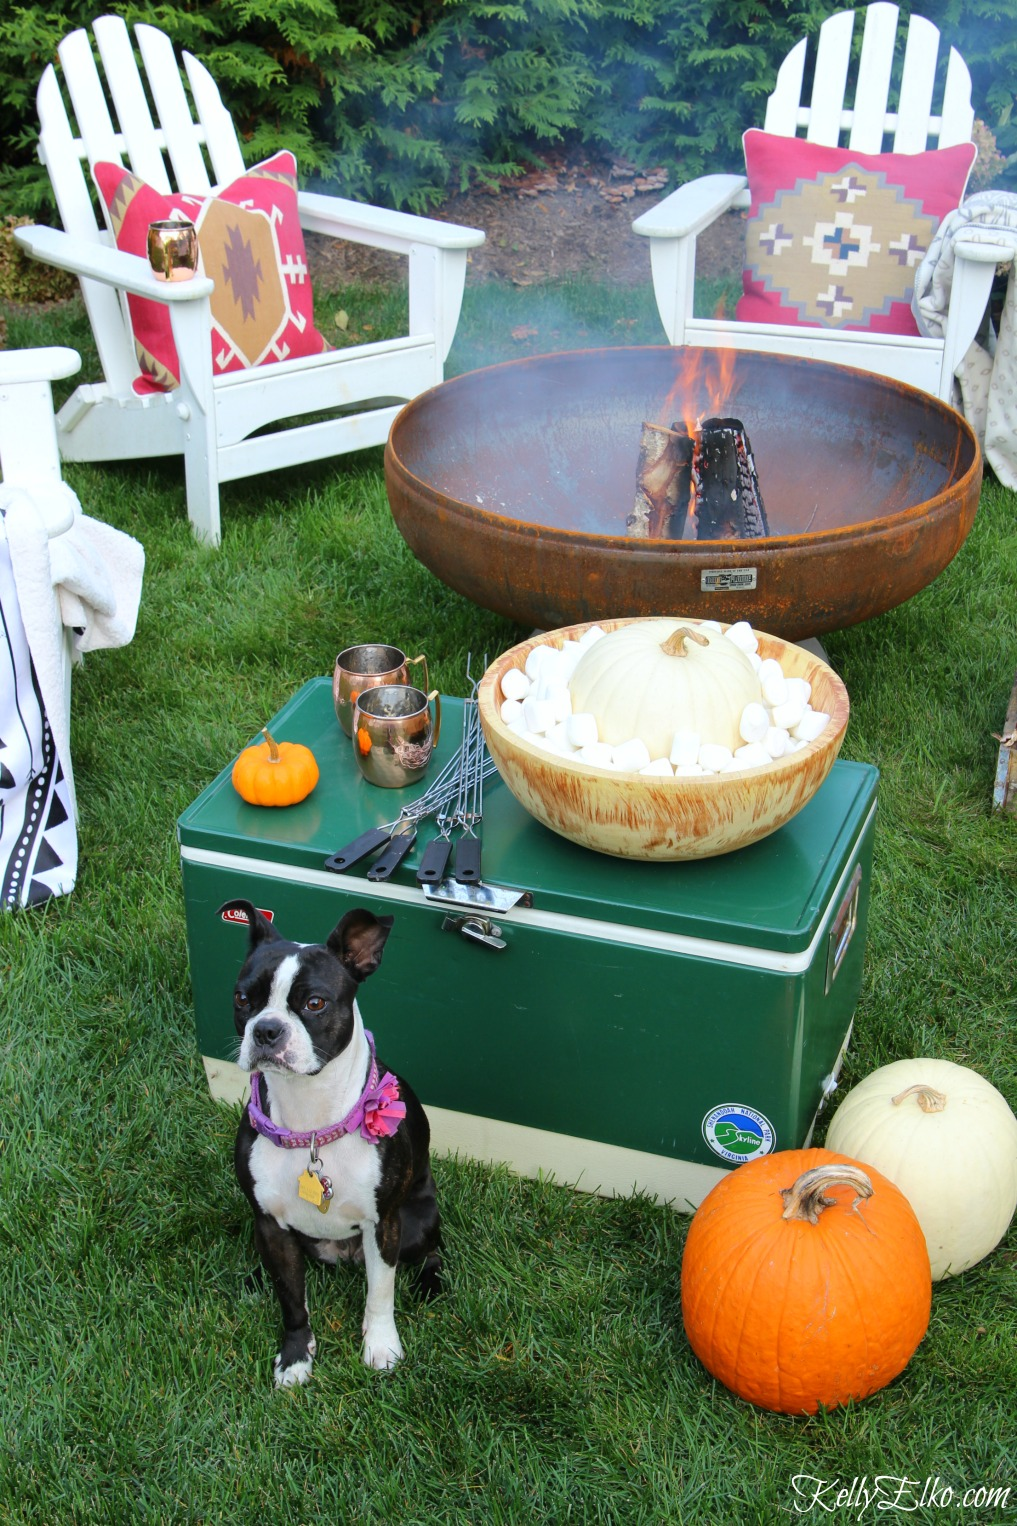 Fall fire pit and smores bar - love the boho pillows and vintage accessories like the old cooler kellyelko.com